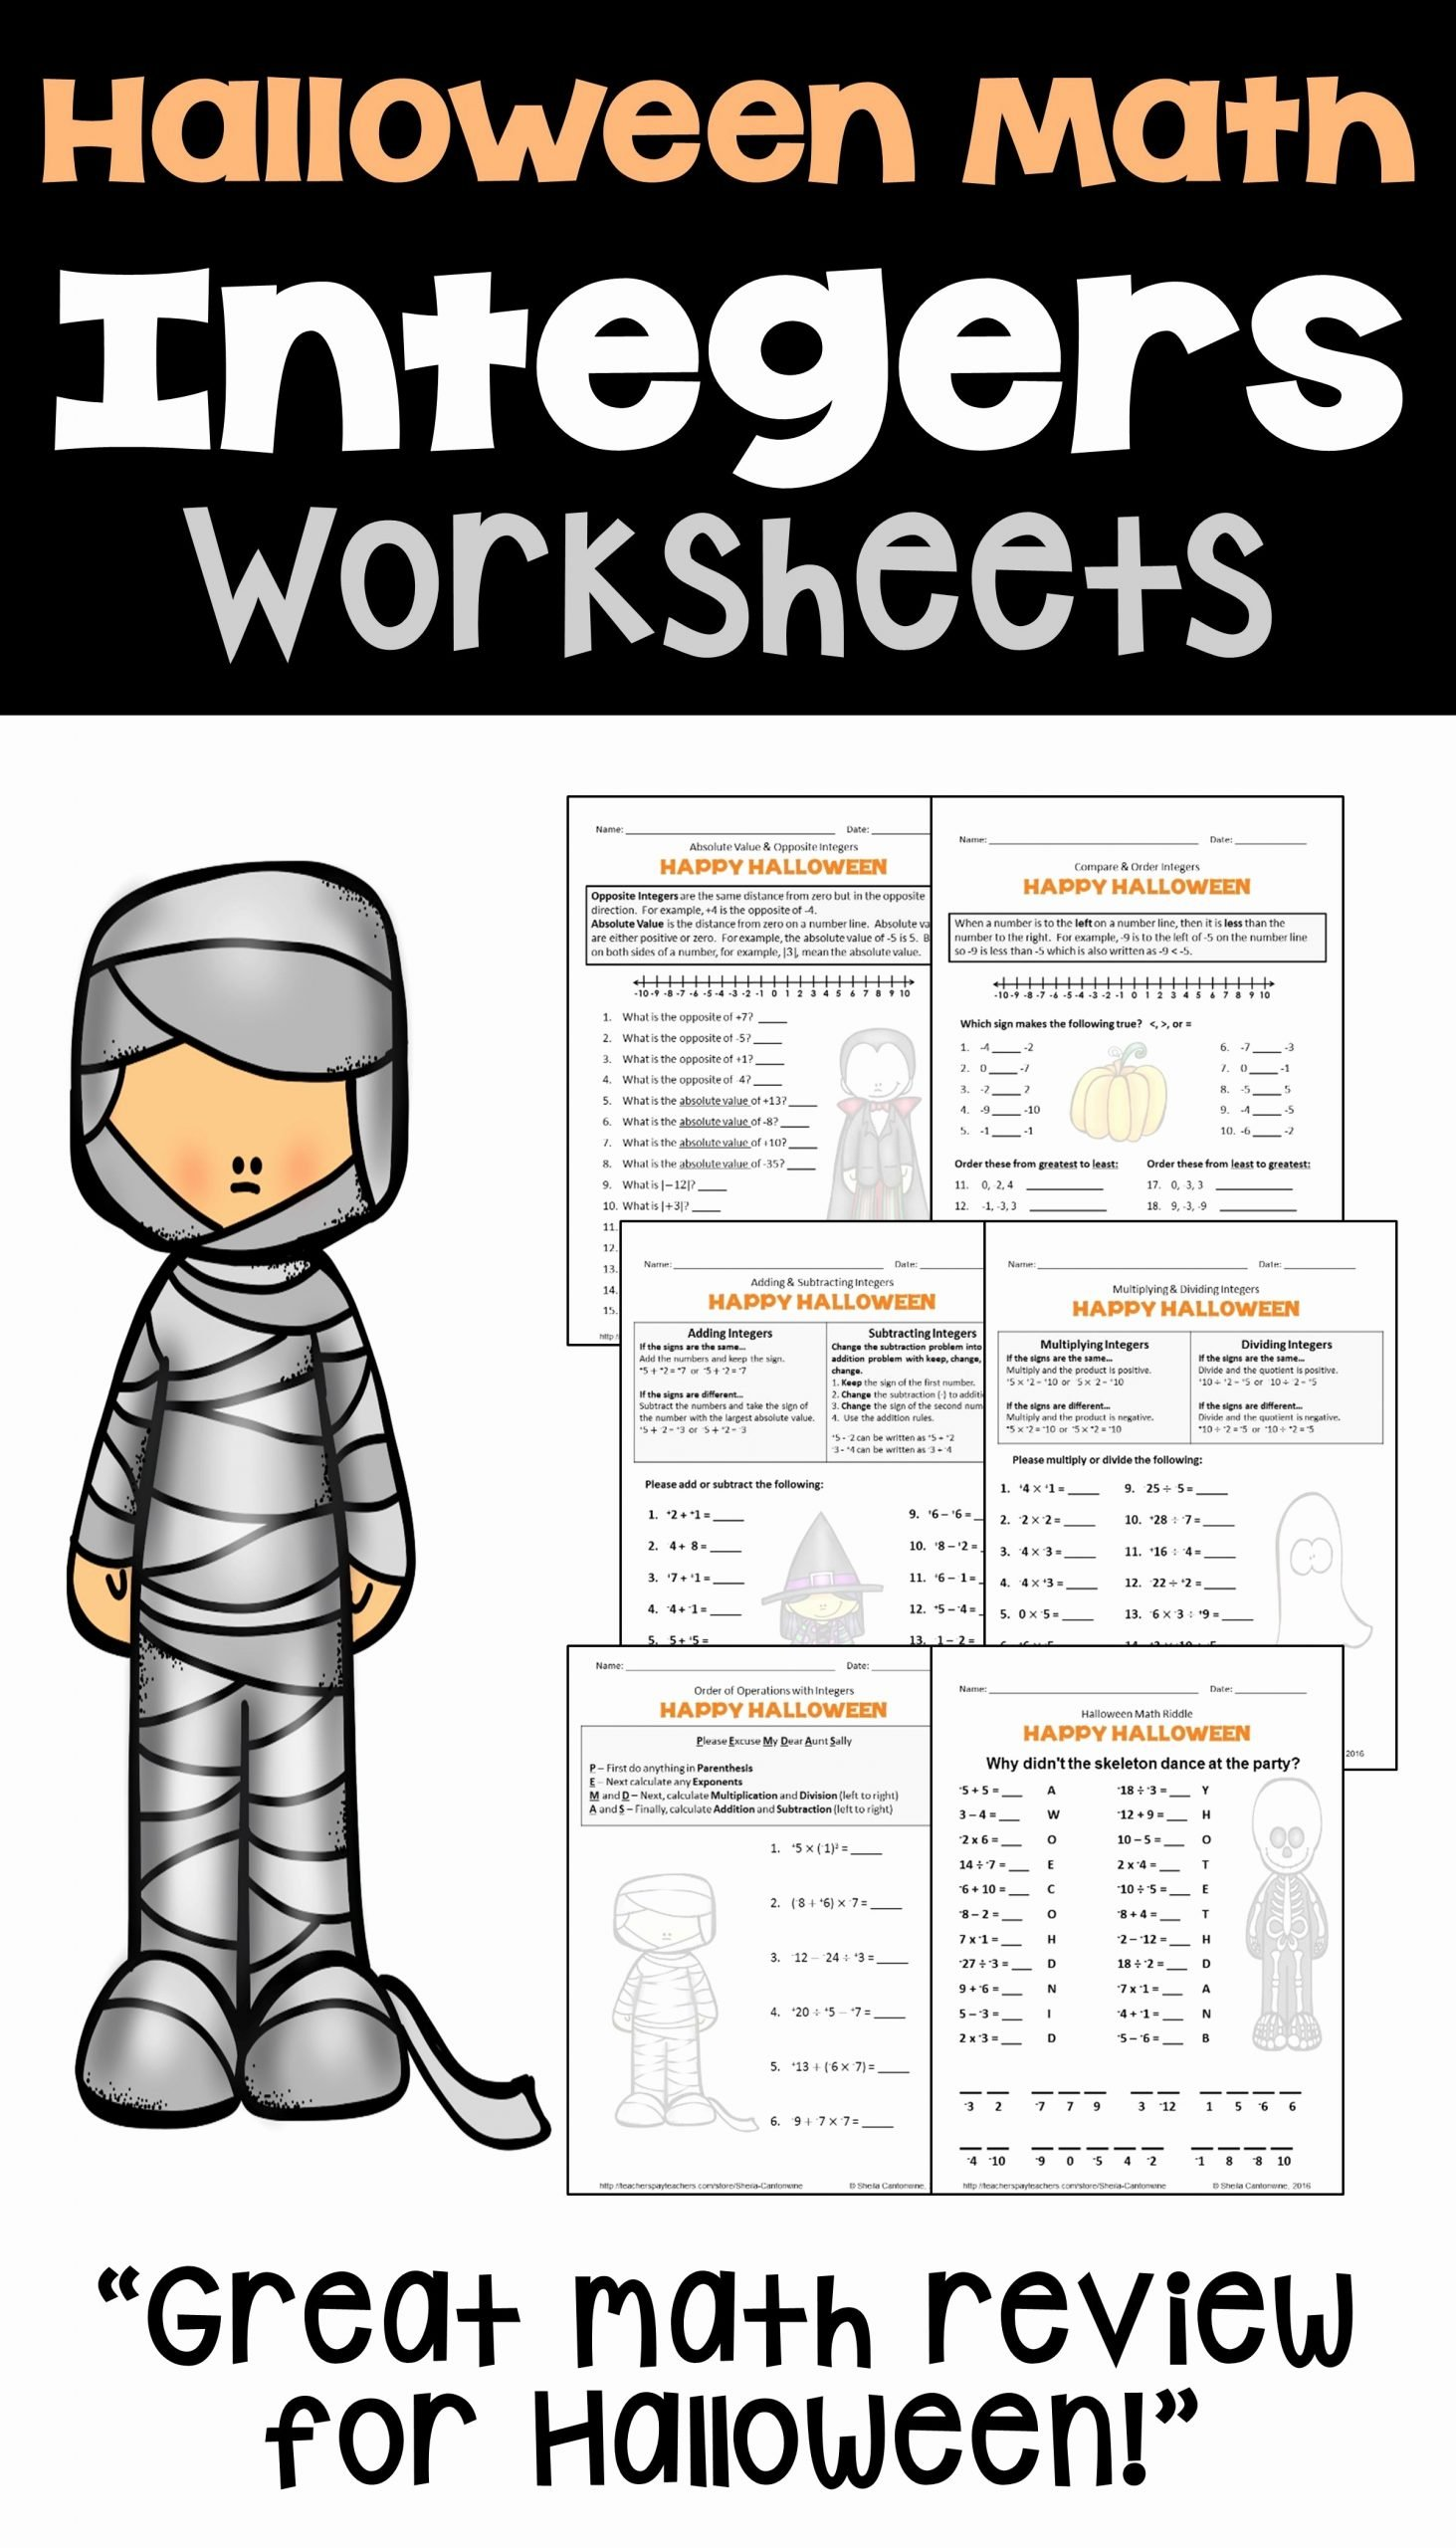 Halloween Math Worksheets Middle School top Halloween Math is Fun for Kids with these Printable Integer